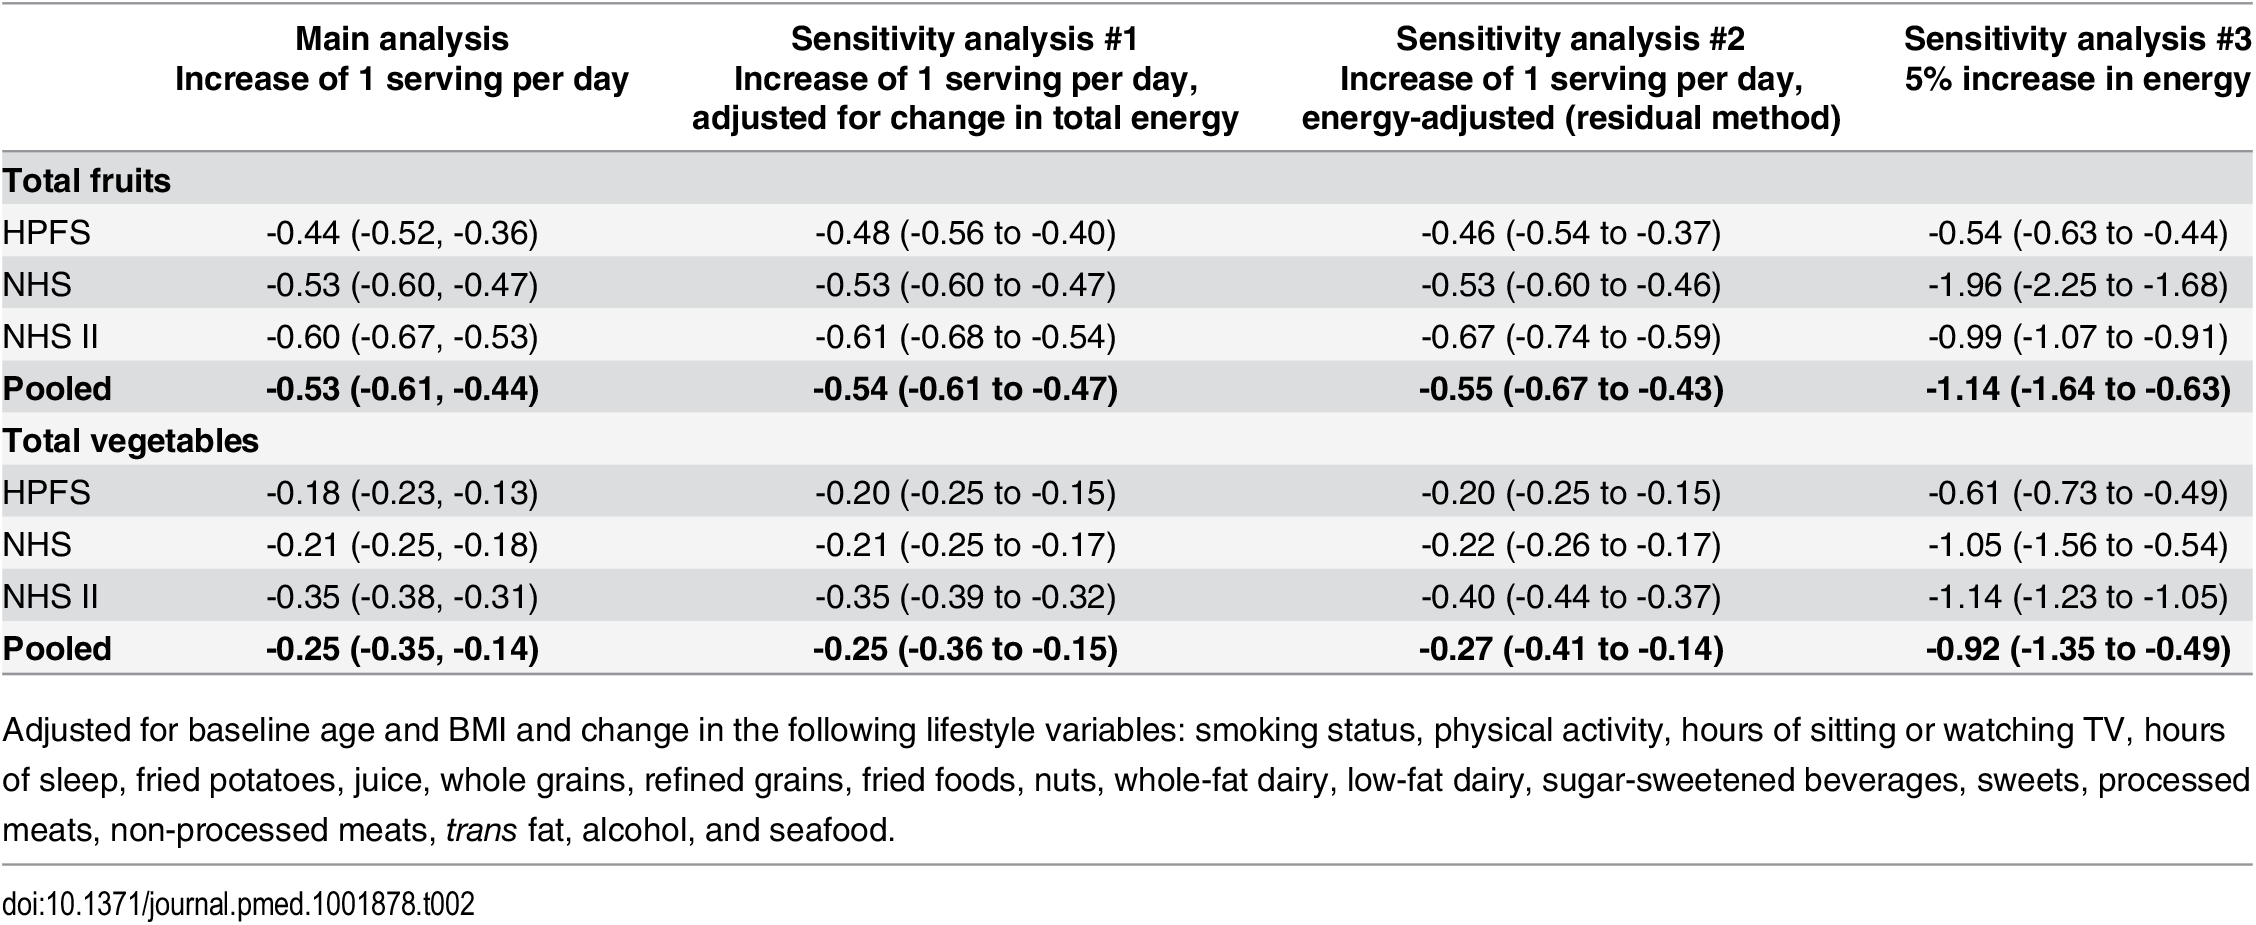 Energy sensitivity analyses: Weight change (lb) associated with increased consumption of fruits and vegetables over 4 y.